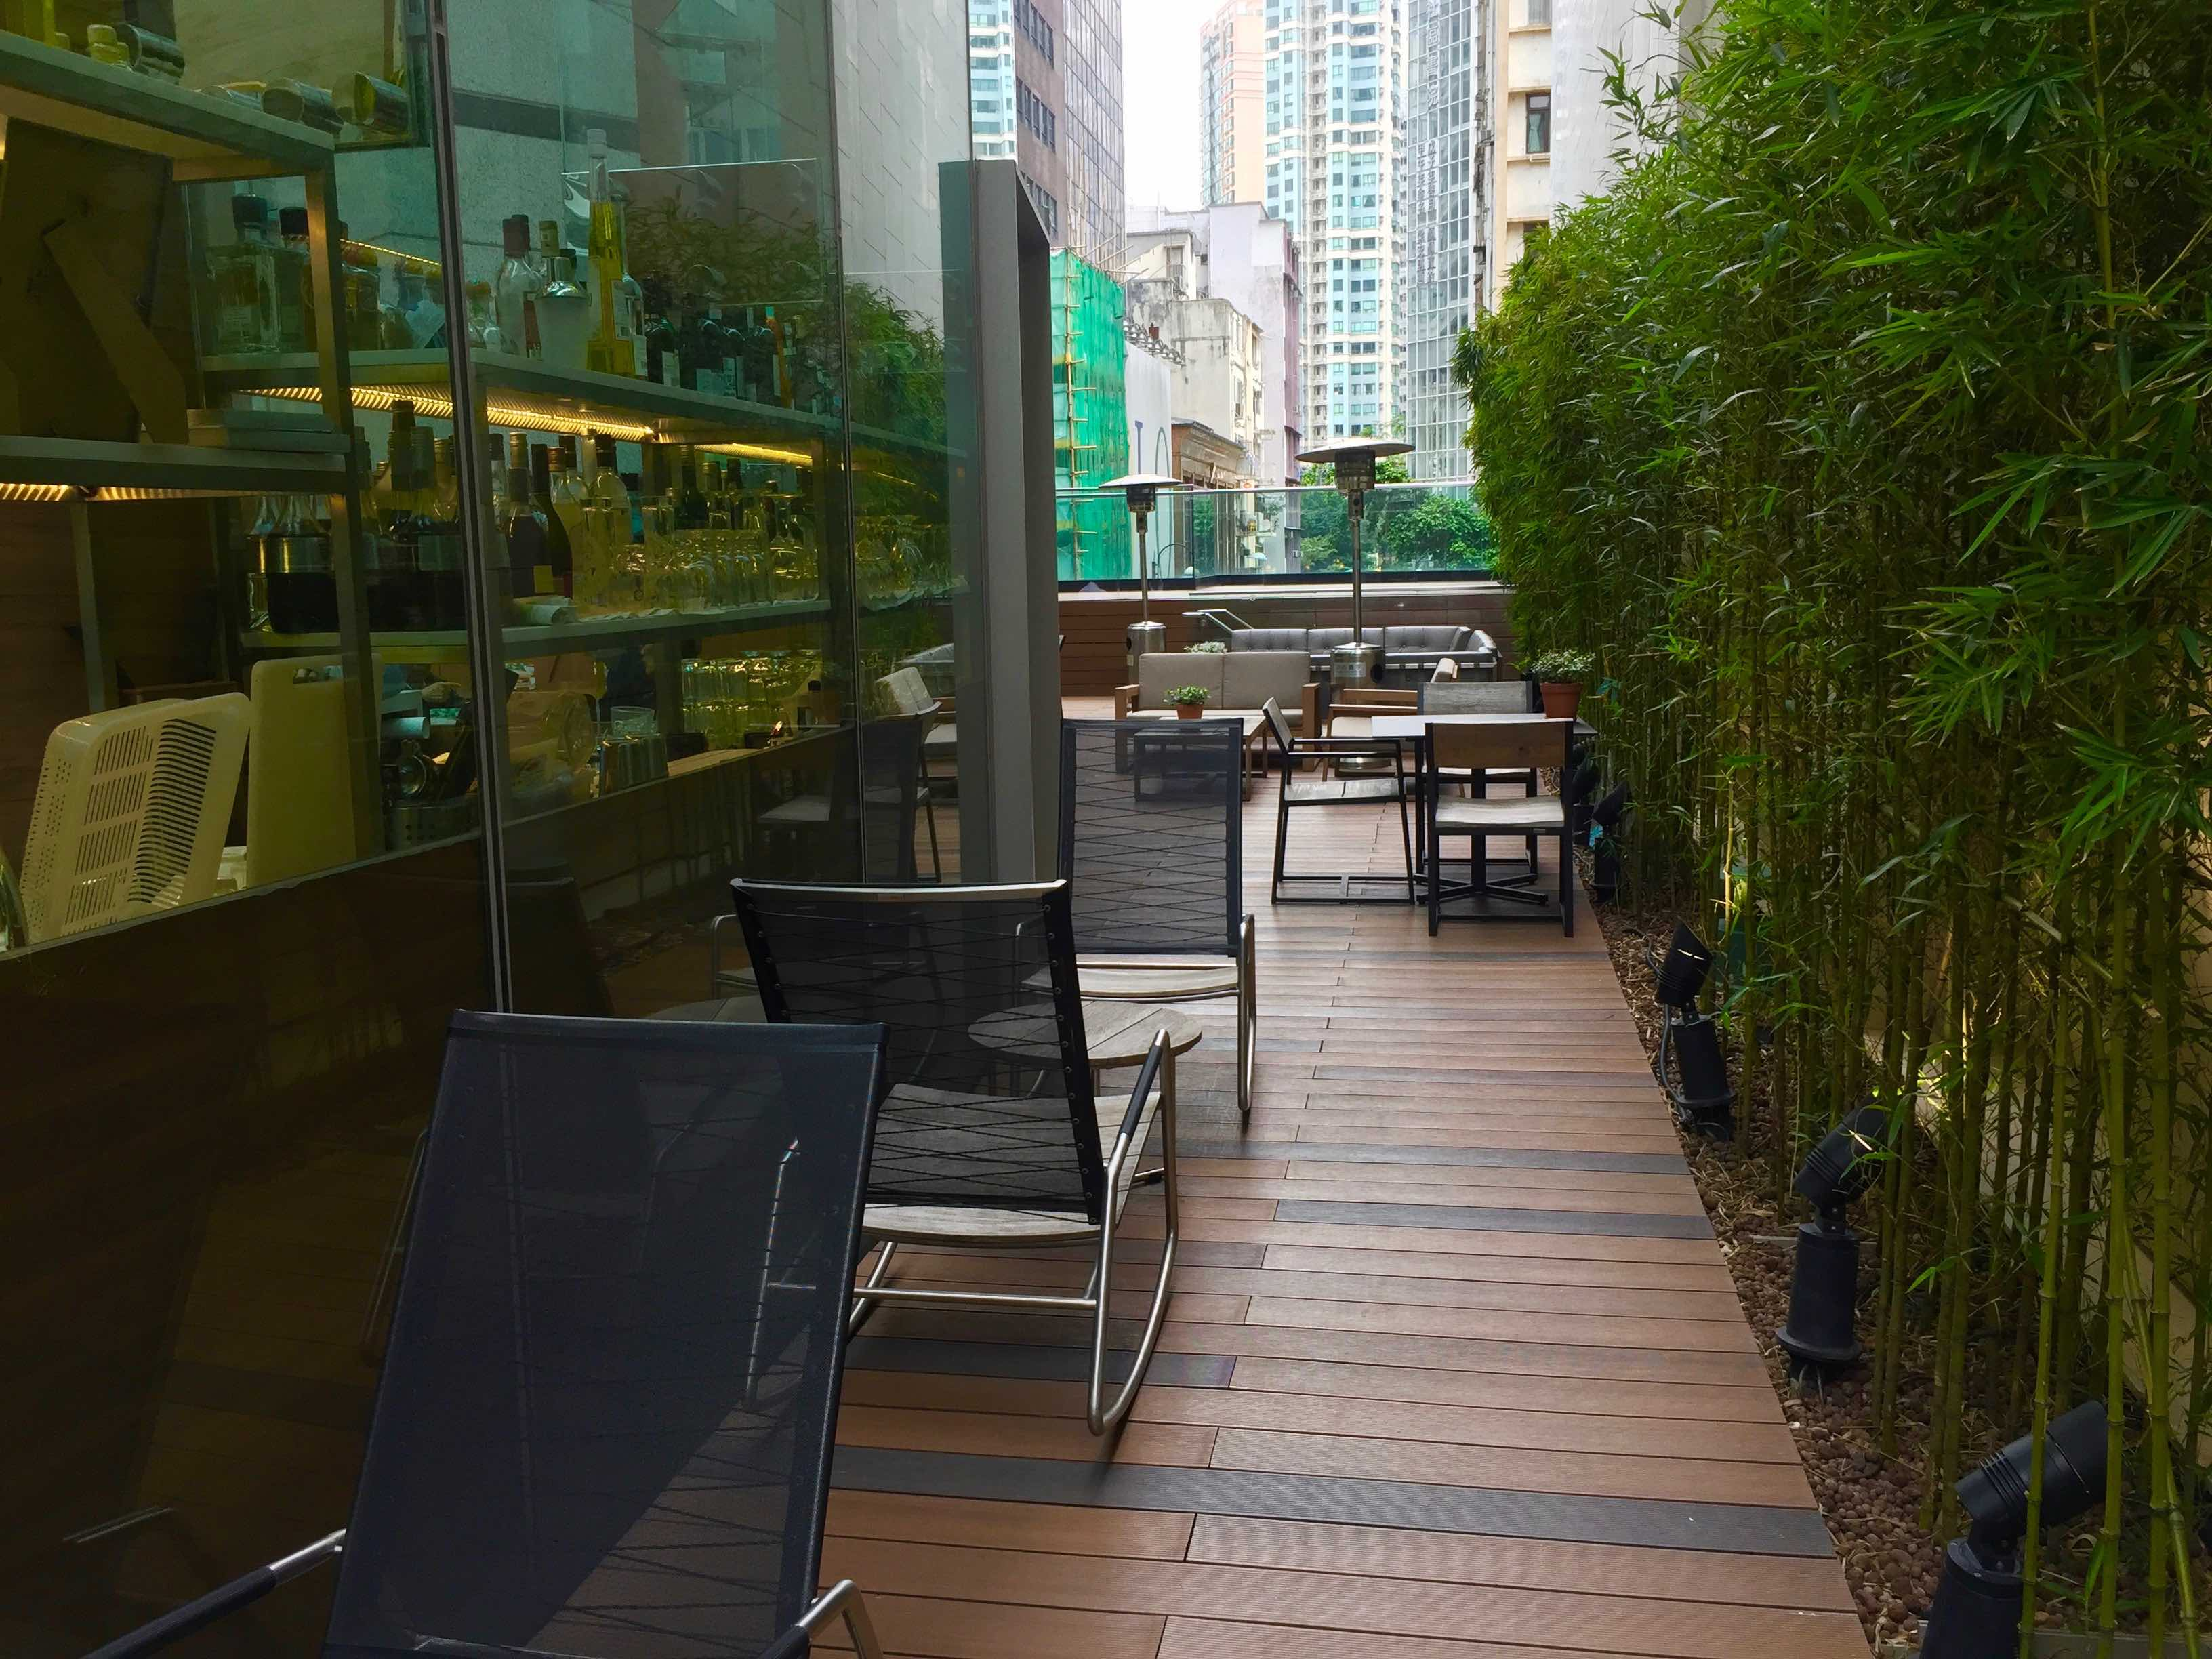 HK Causeway Bay Cafe space for lease with huge outdoor